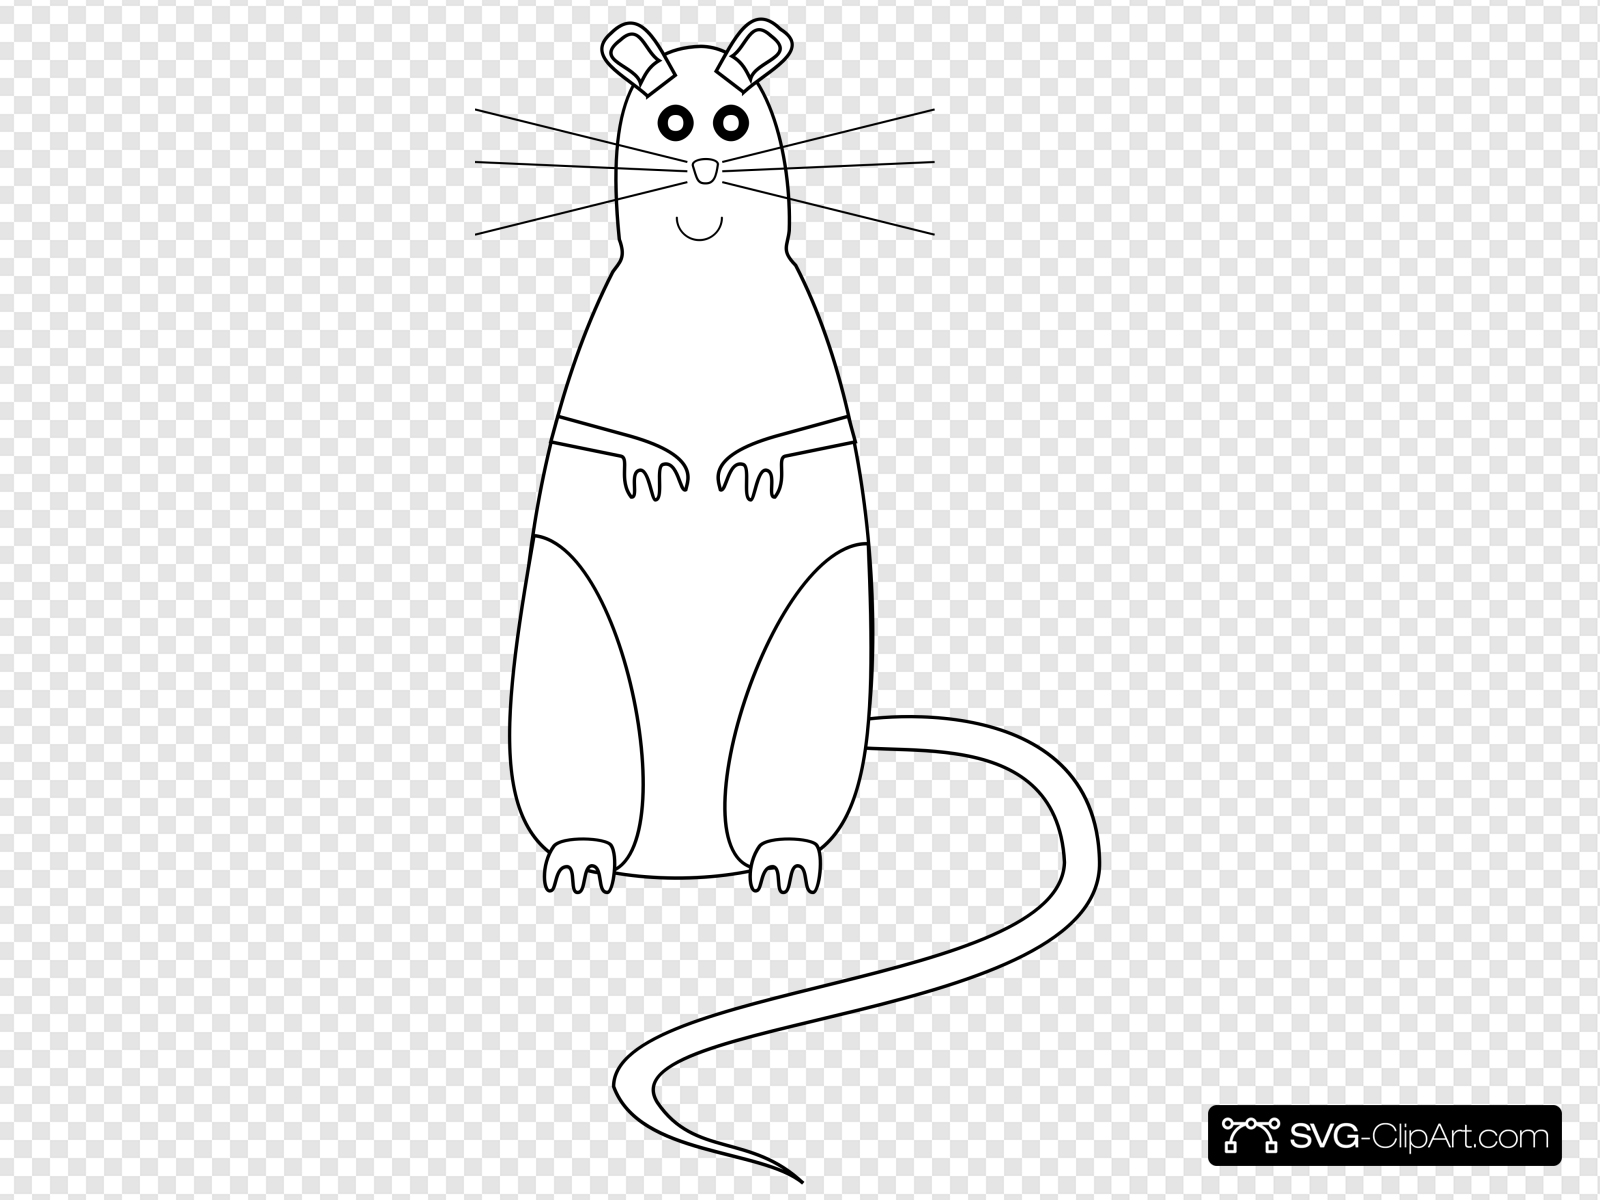 Rat Outline Clip art, Icon and SVG.